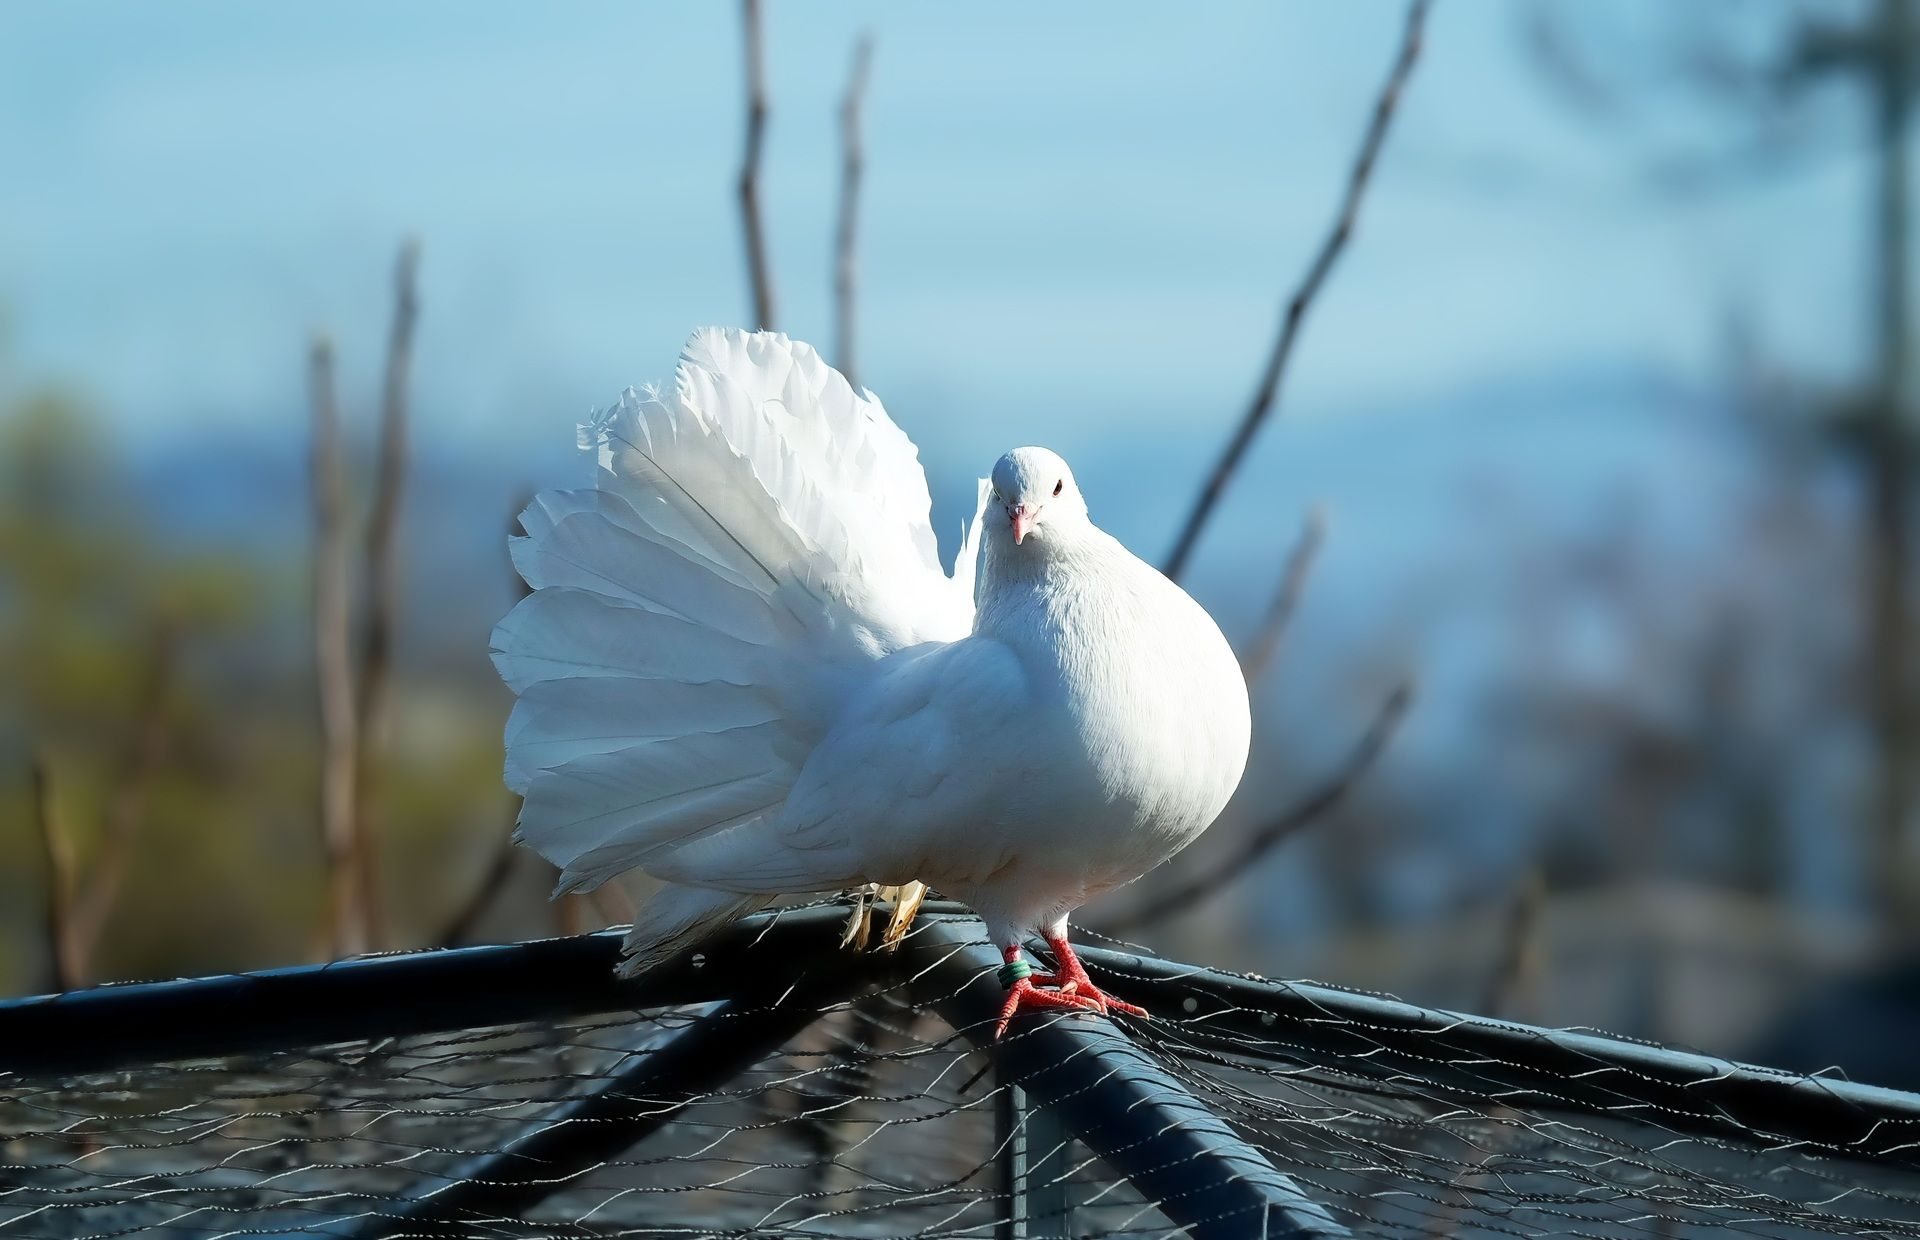 Beautiful White Pigeon Wallpapers to Download for Free